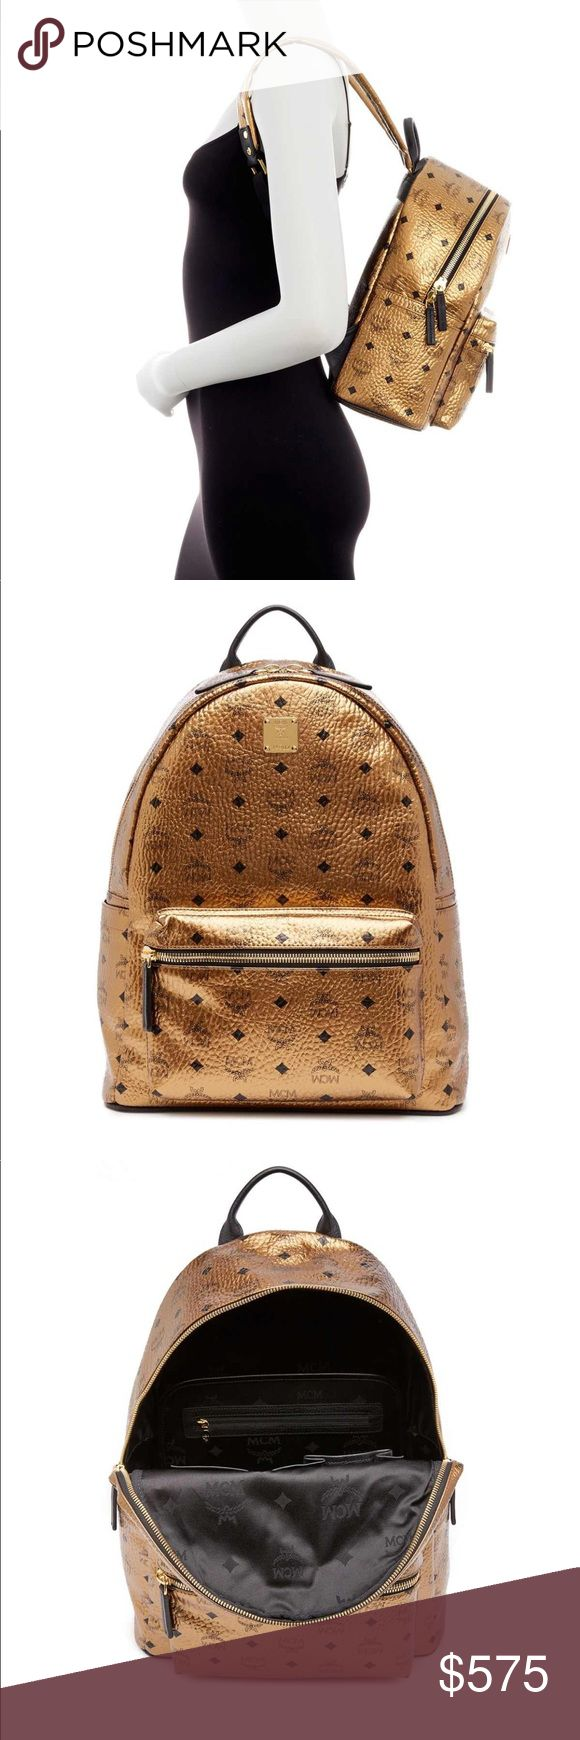 BRAND NEW AUTHENTIC MCM GOLD LIMITED ED BACKPACK Brand new with tags limited edition GOLD leather MCM backpack purchased directly by me with proof of purchase all tags intact. $720 MRSP RETAIL PRICE BEFORE TAX NO TRADES. MCM Bags Backpacks